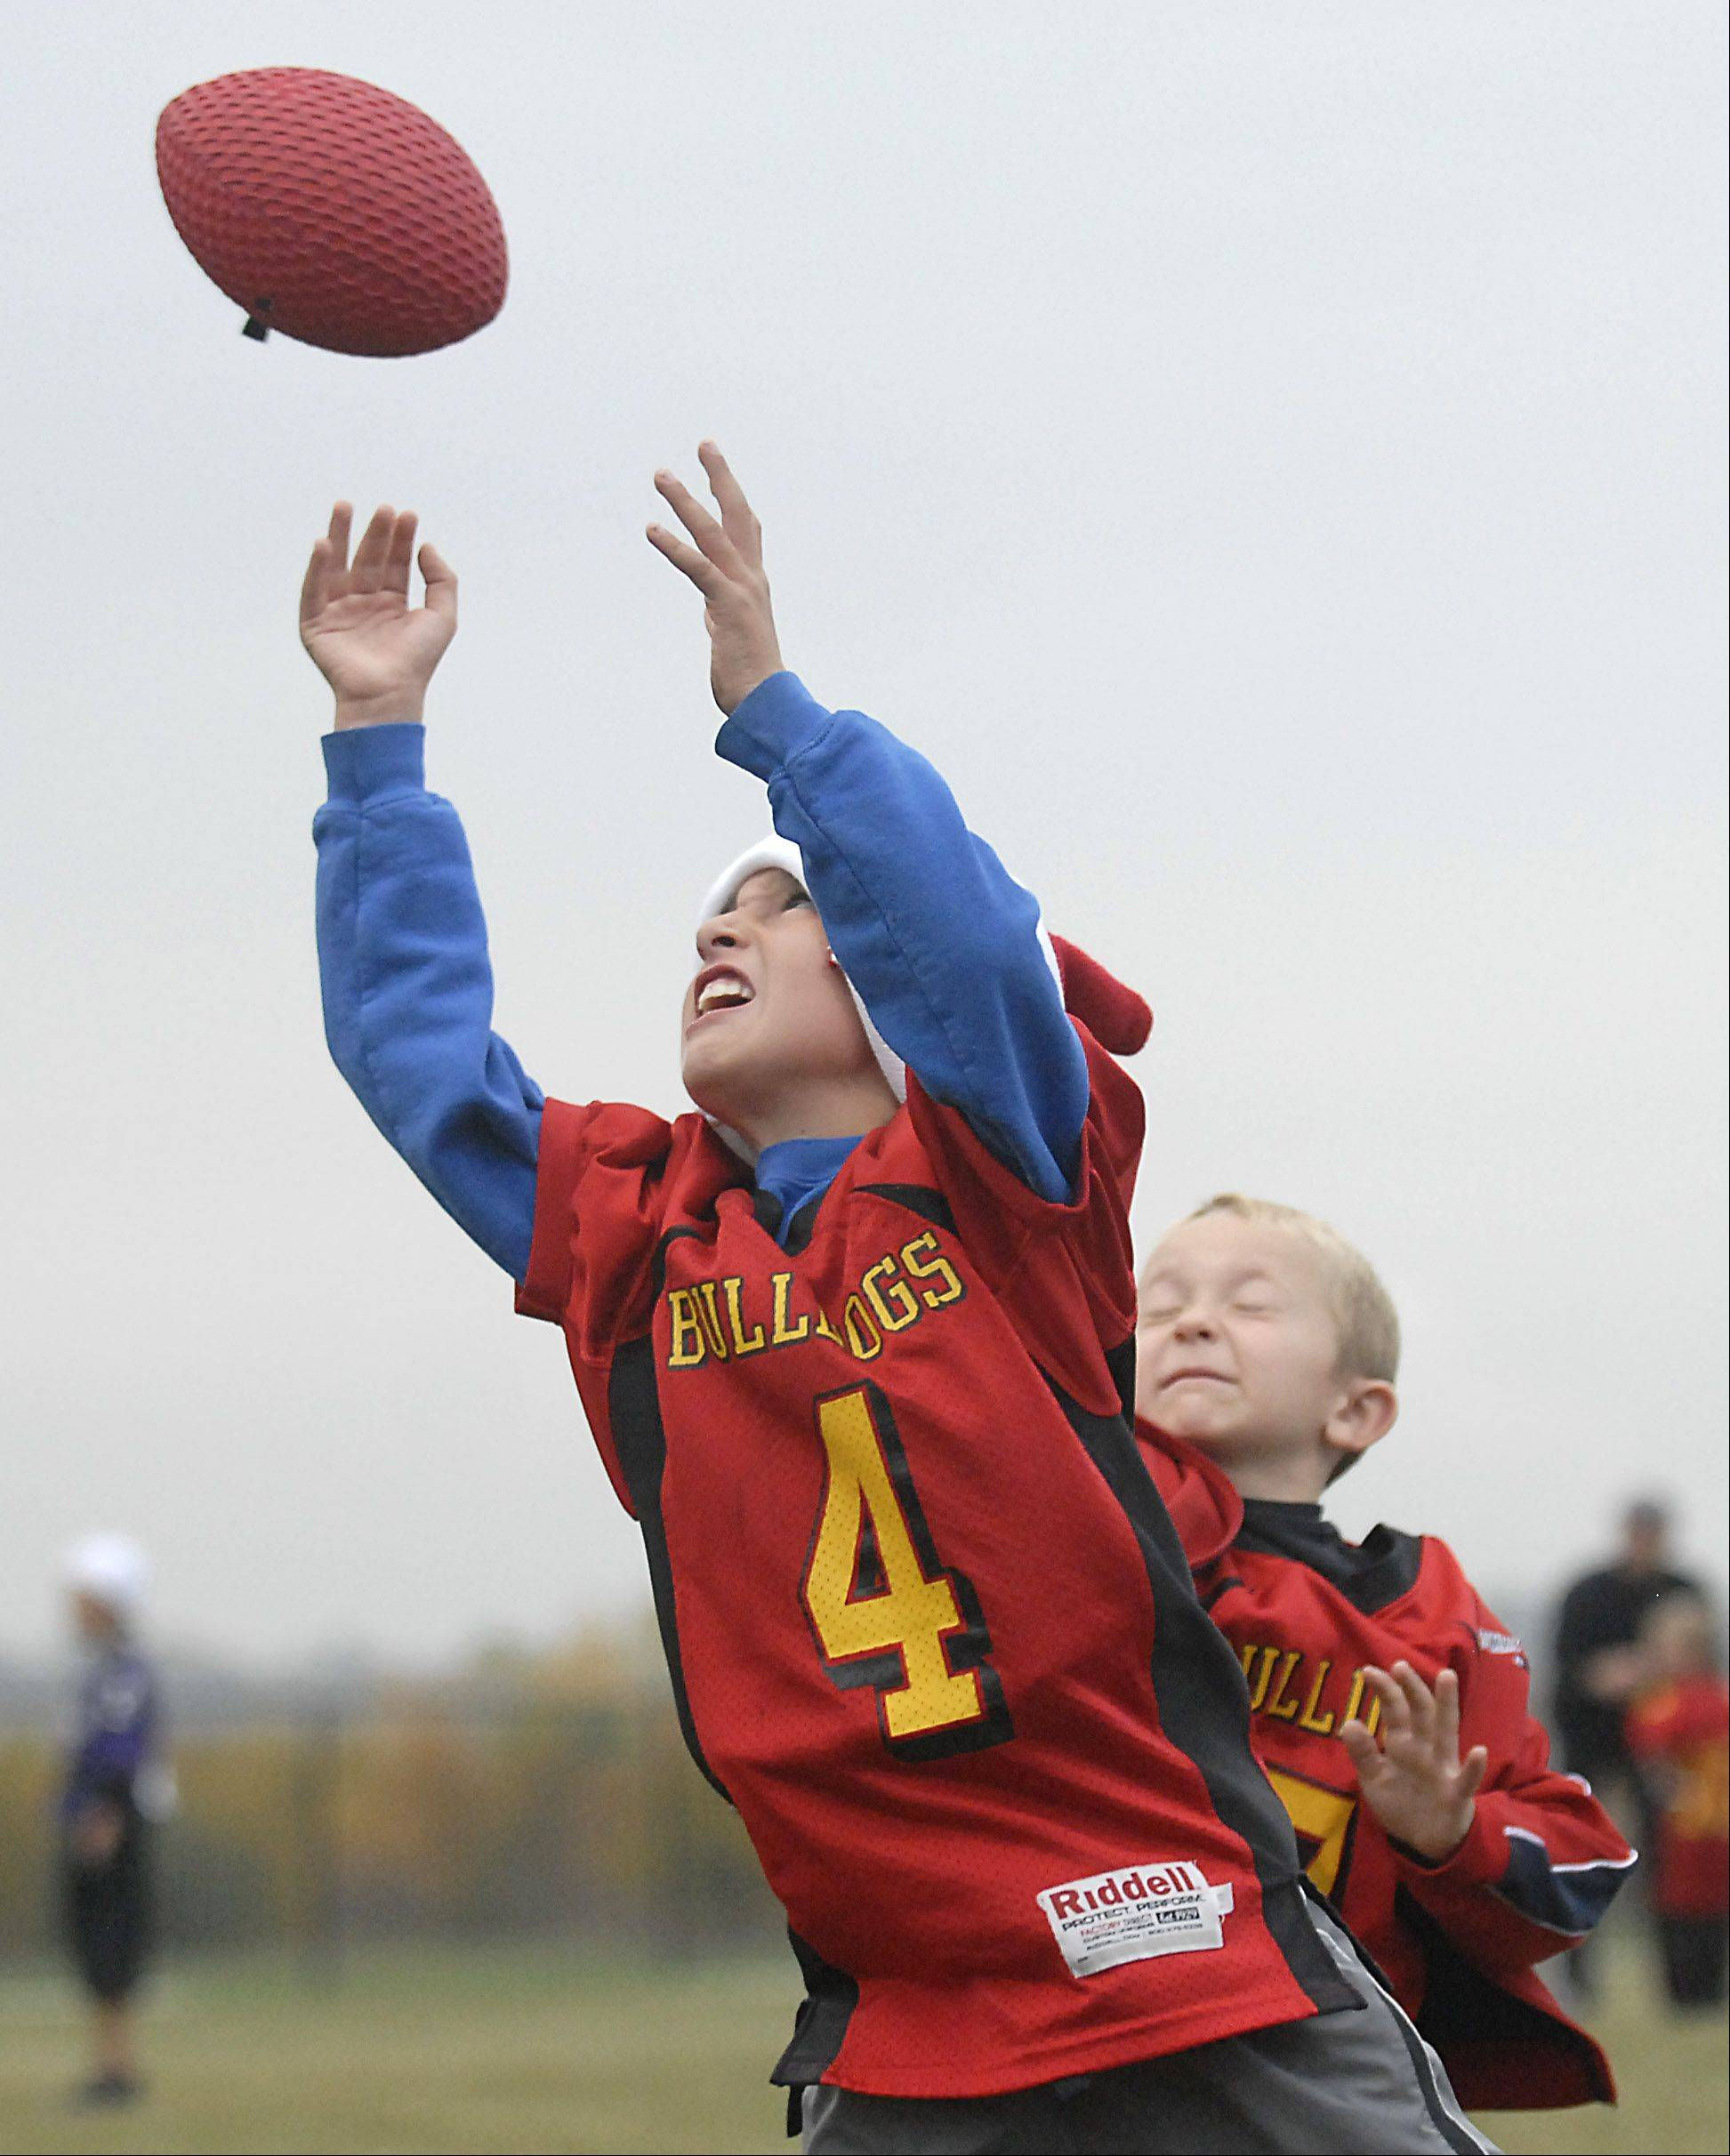 Alex Breytspraak , reaches up for a pass in front of Zach Sledz, both 7 and from Aurora, during a Batavia Youth Football league game at West Main Park in Batavia.